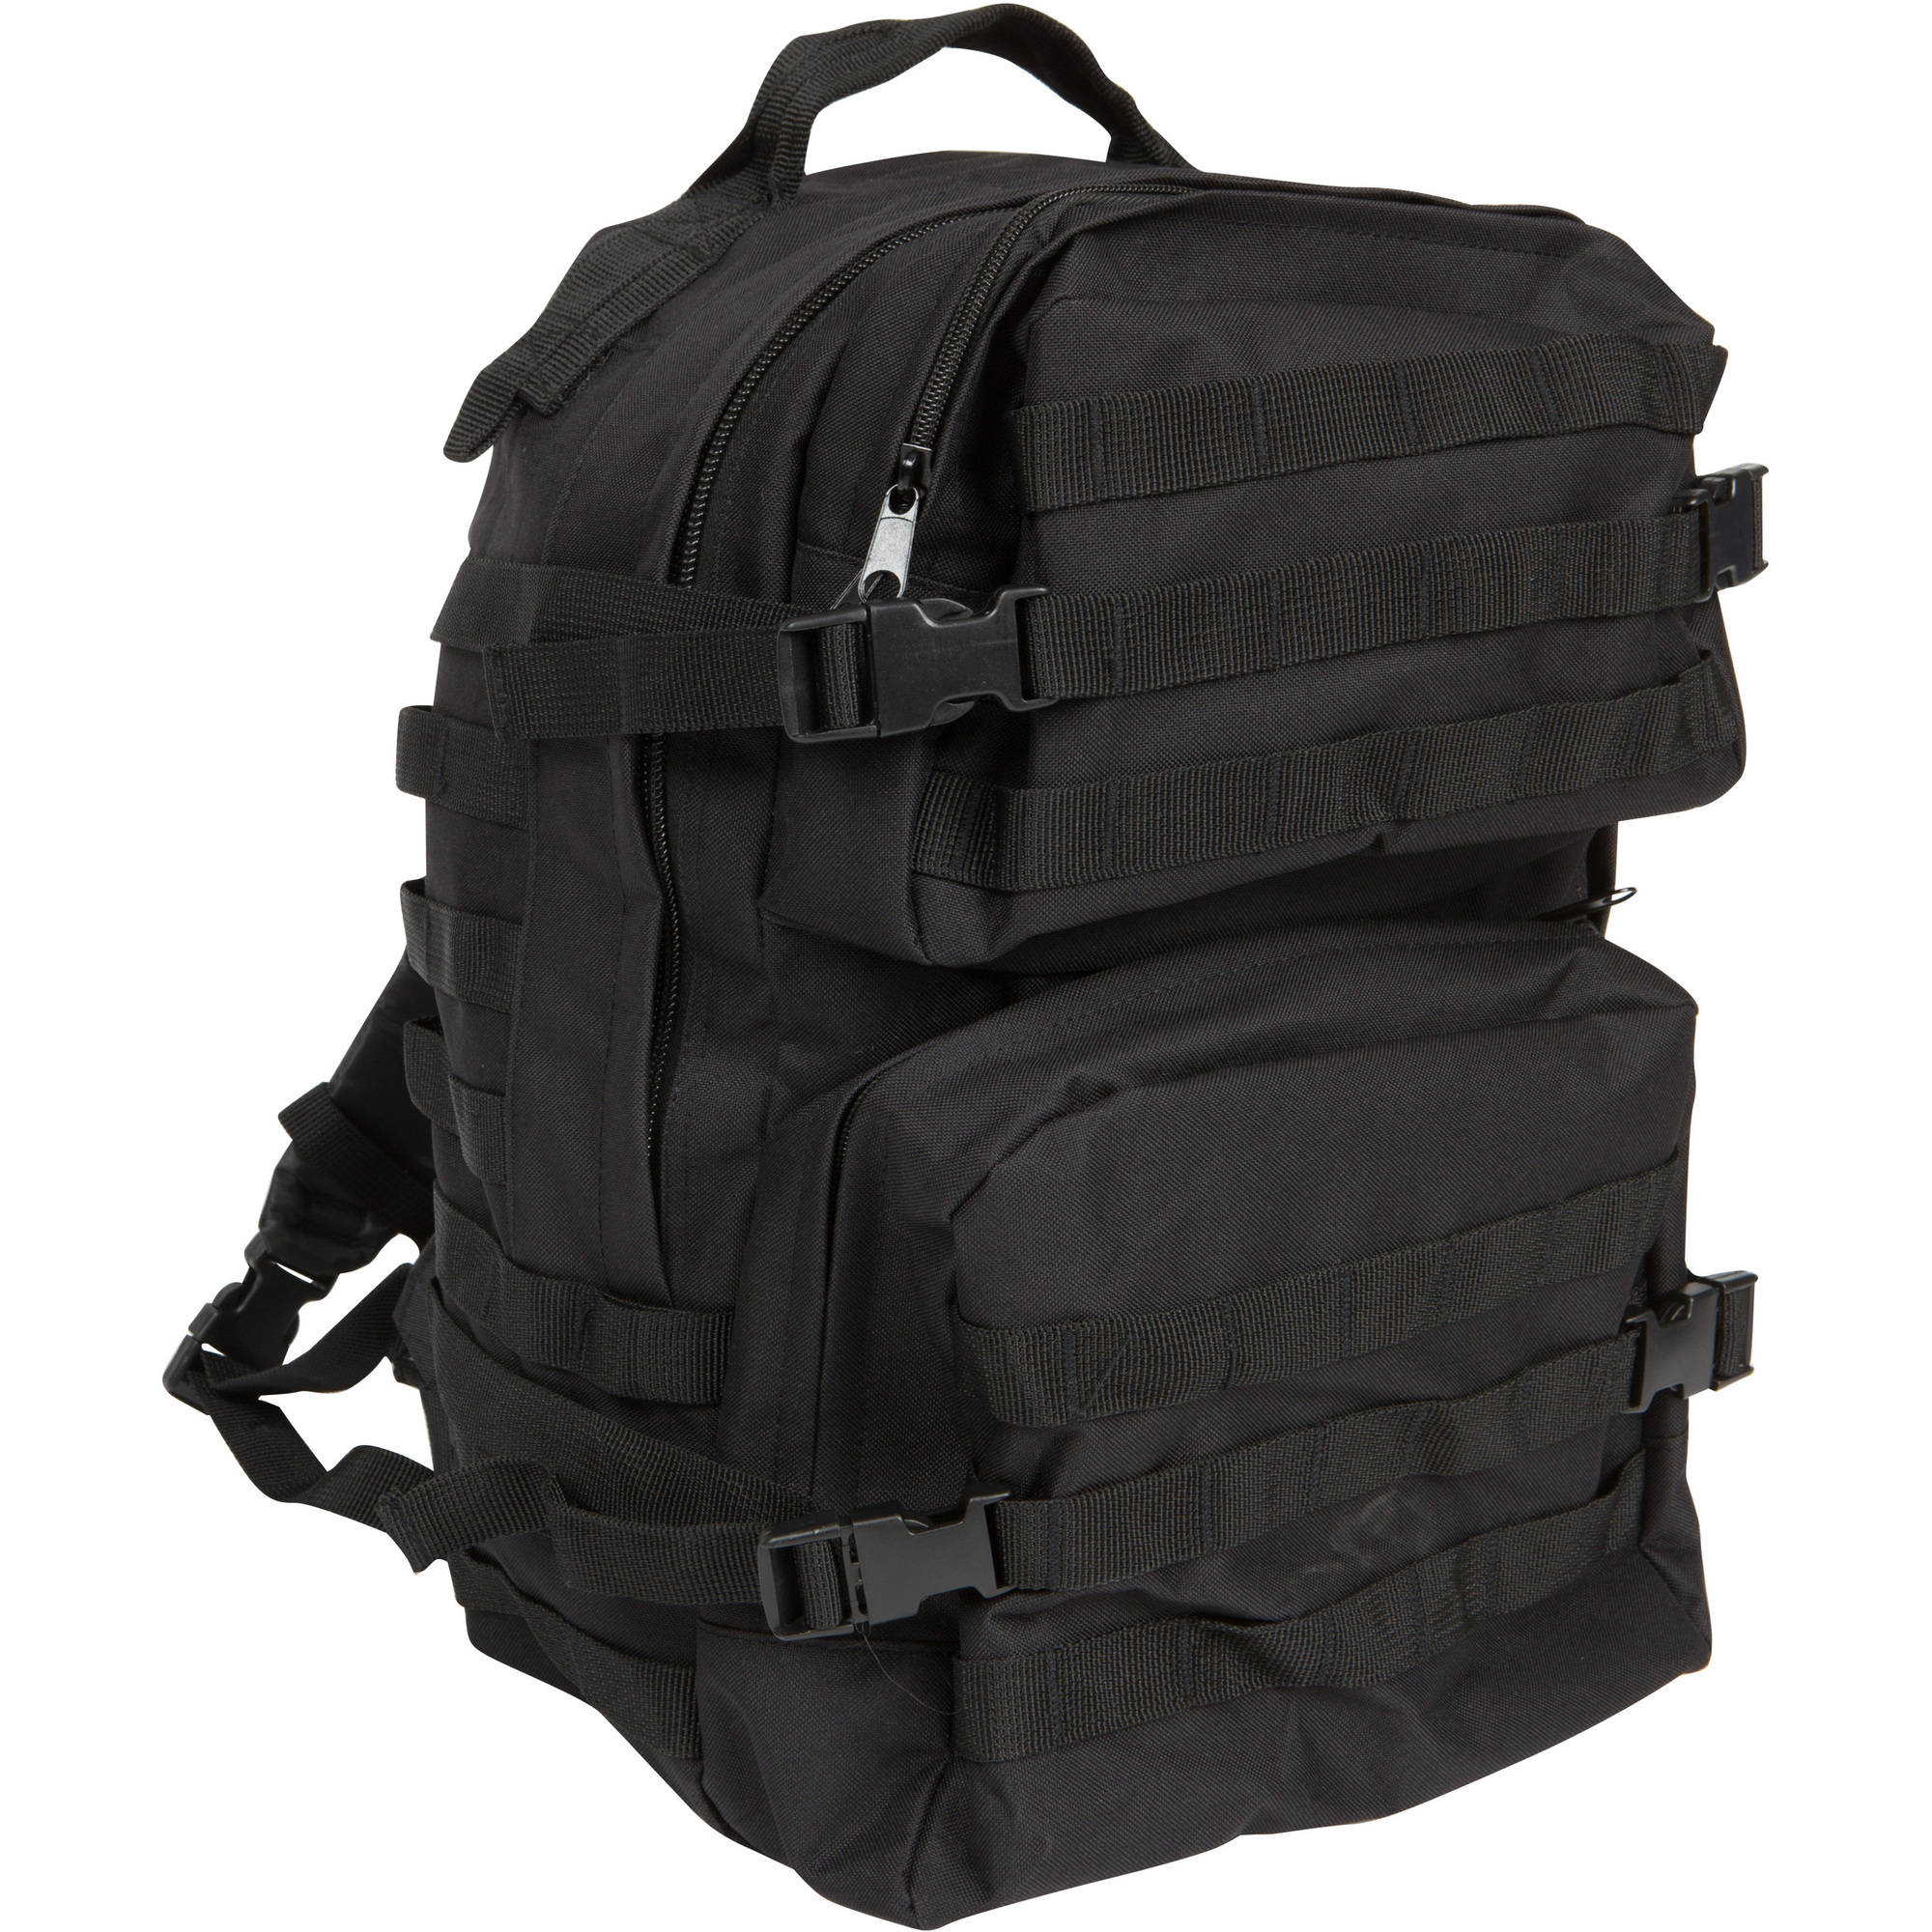 Modern Warrior ACU Military Backpack, Black